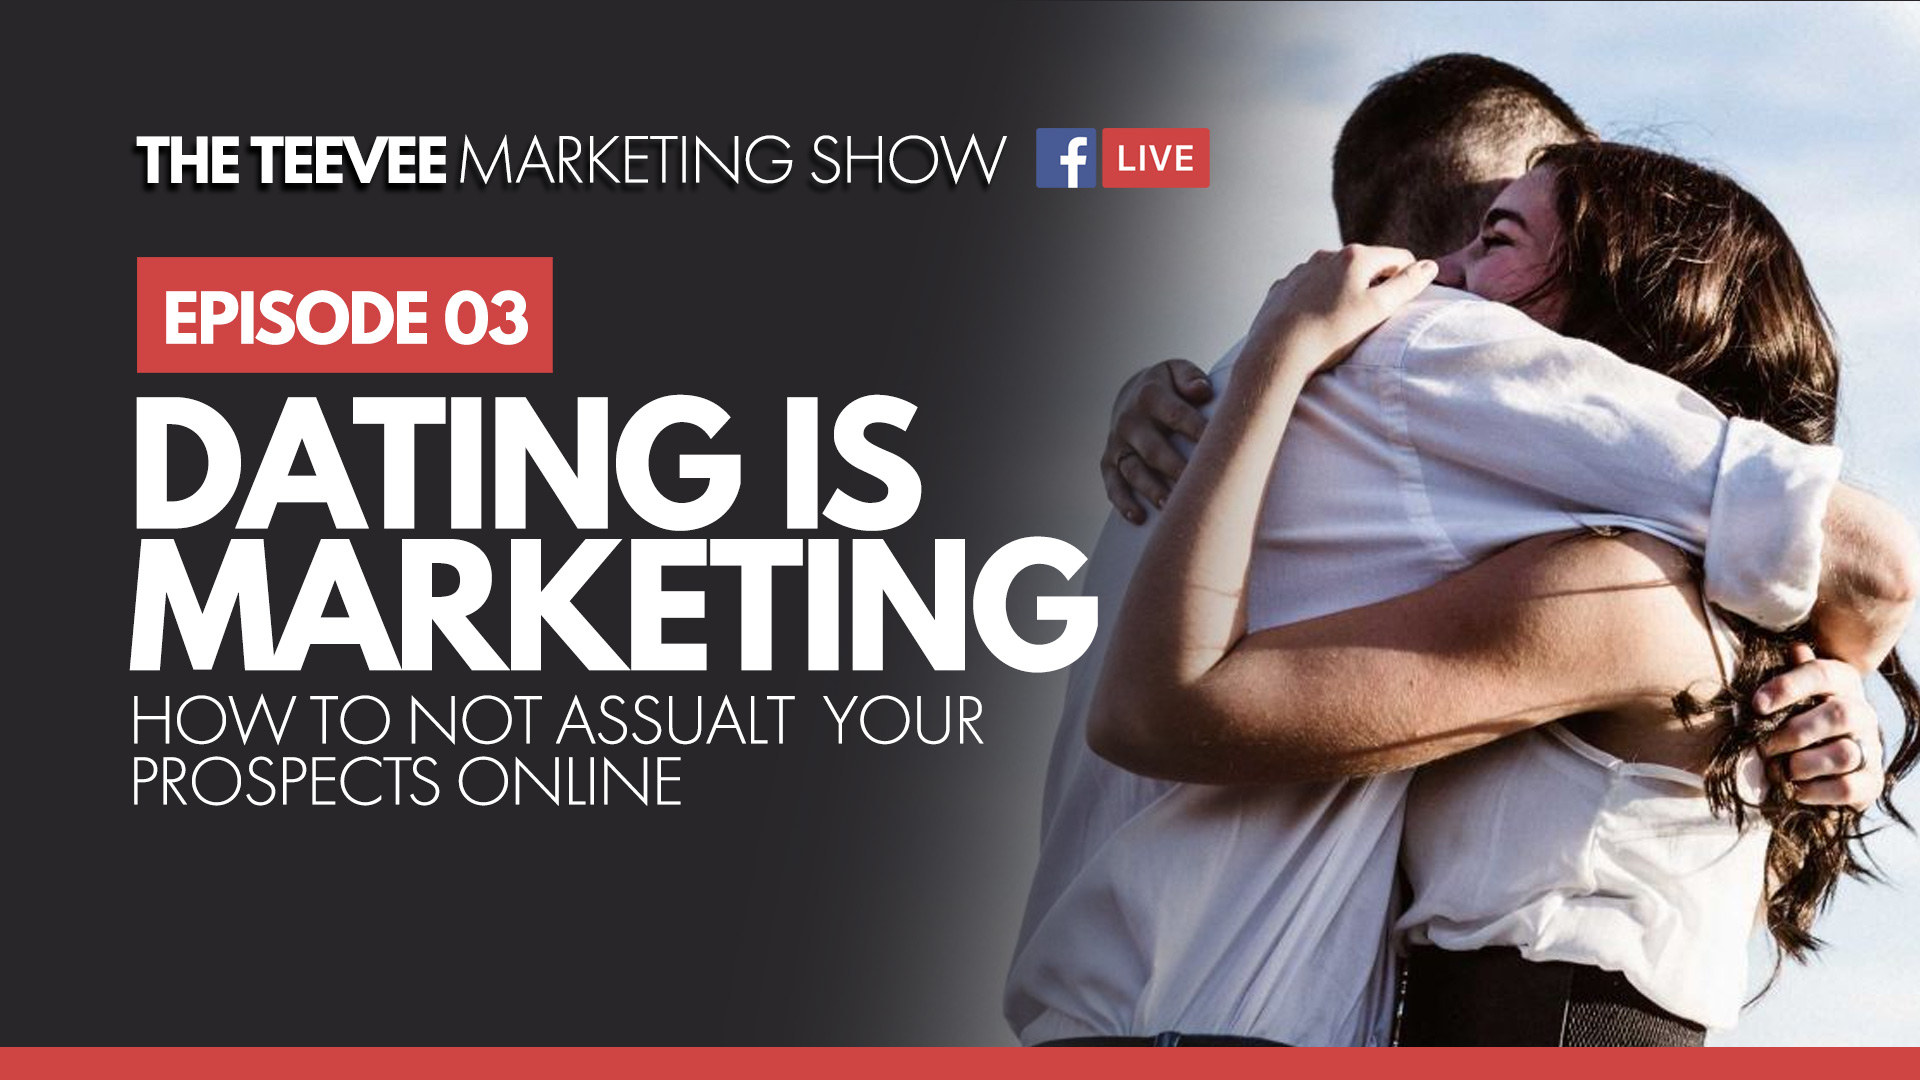 EP007- Secrets to Marketing Intimacy Without Digitally Assault Your Prospects